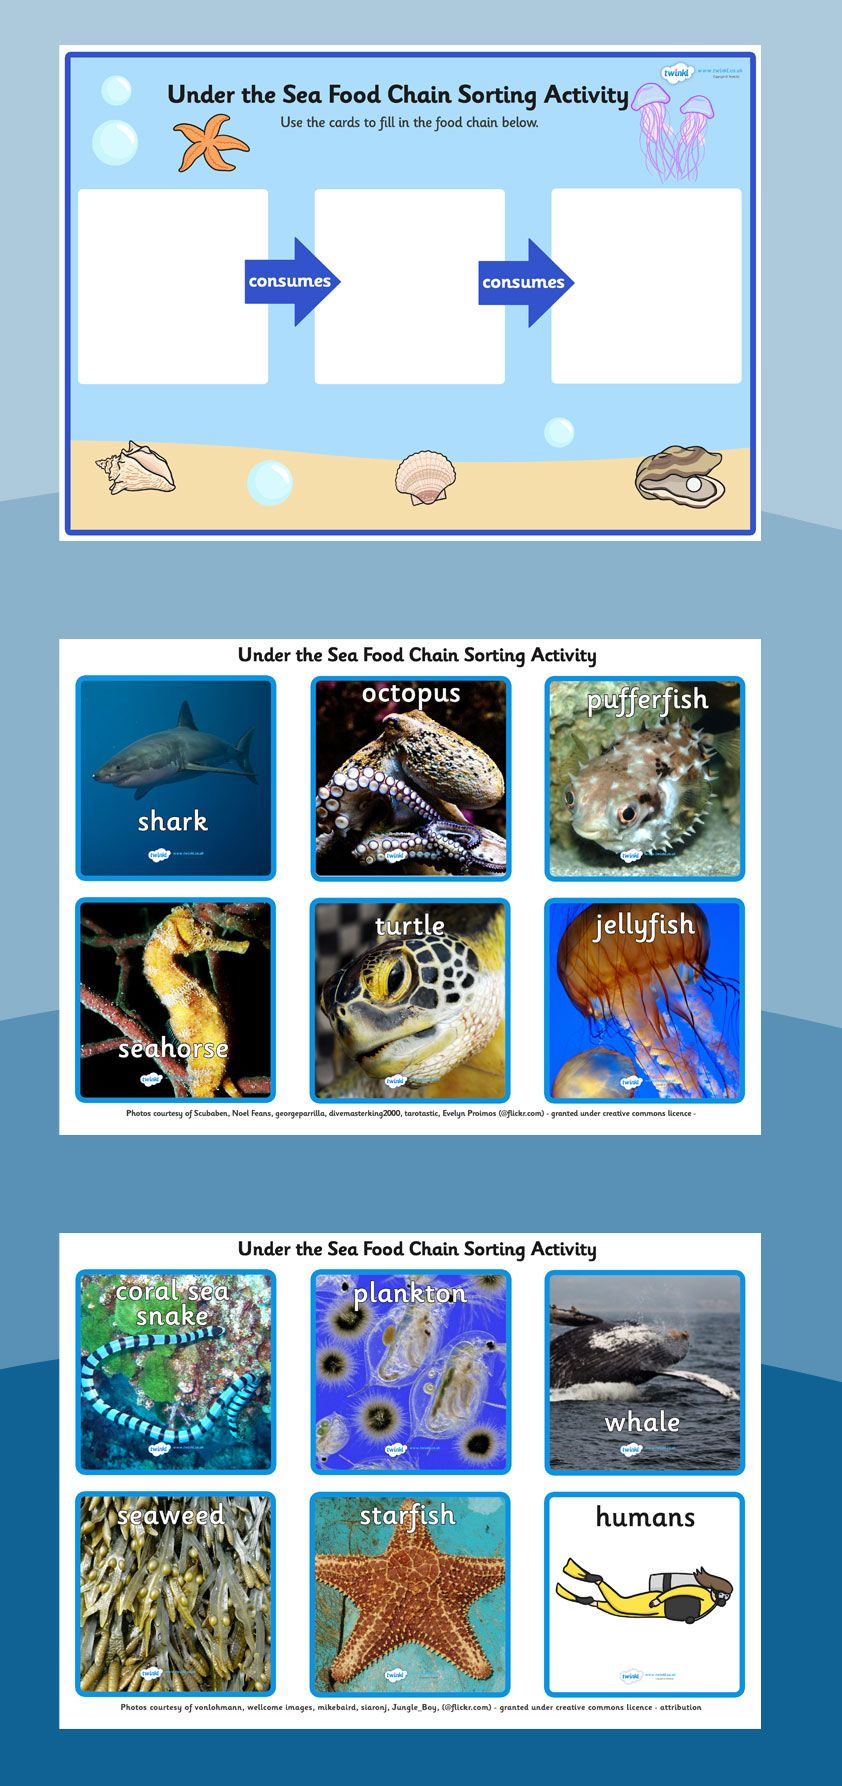 Food chains Under the sea food chain sorting activity